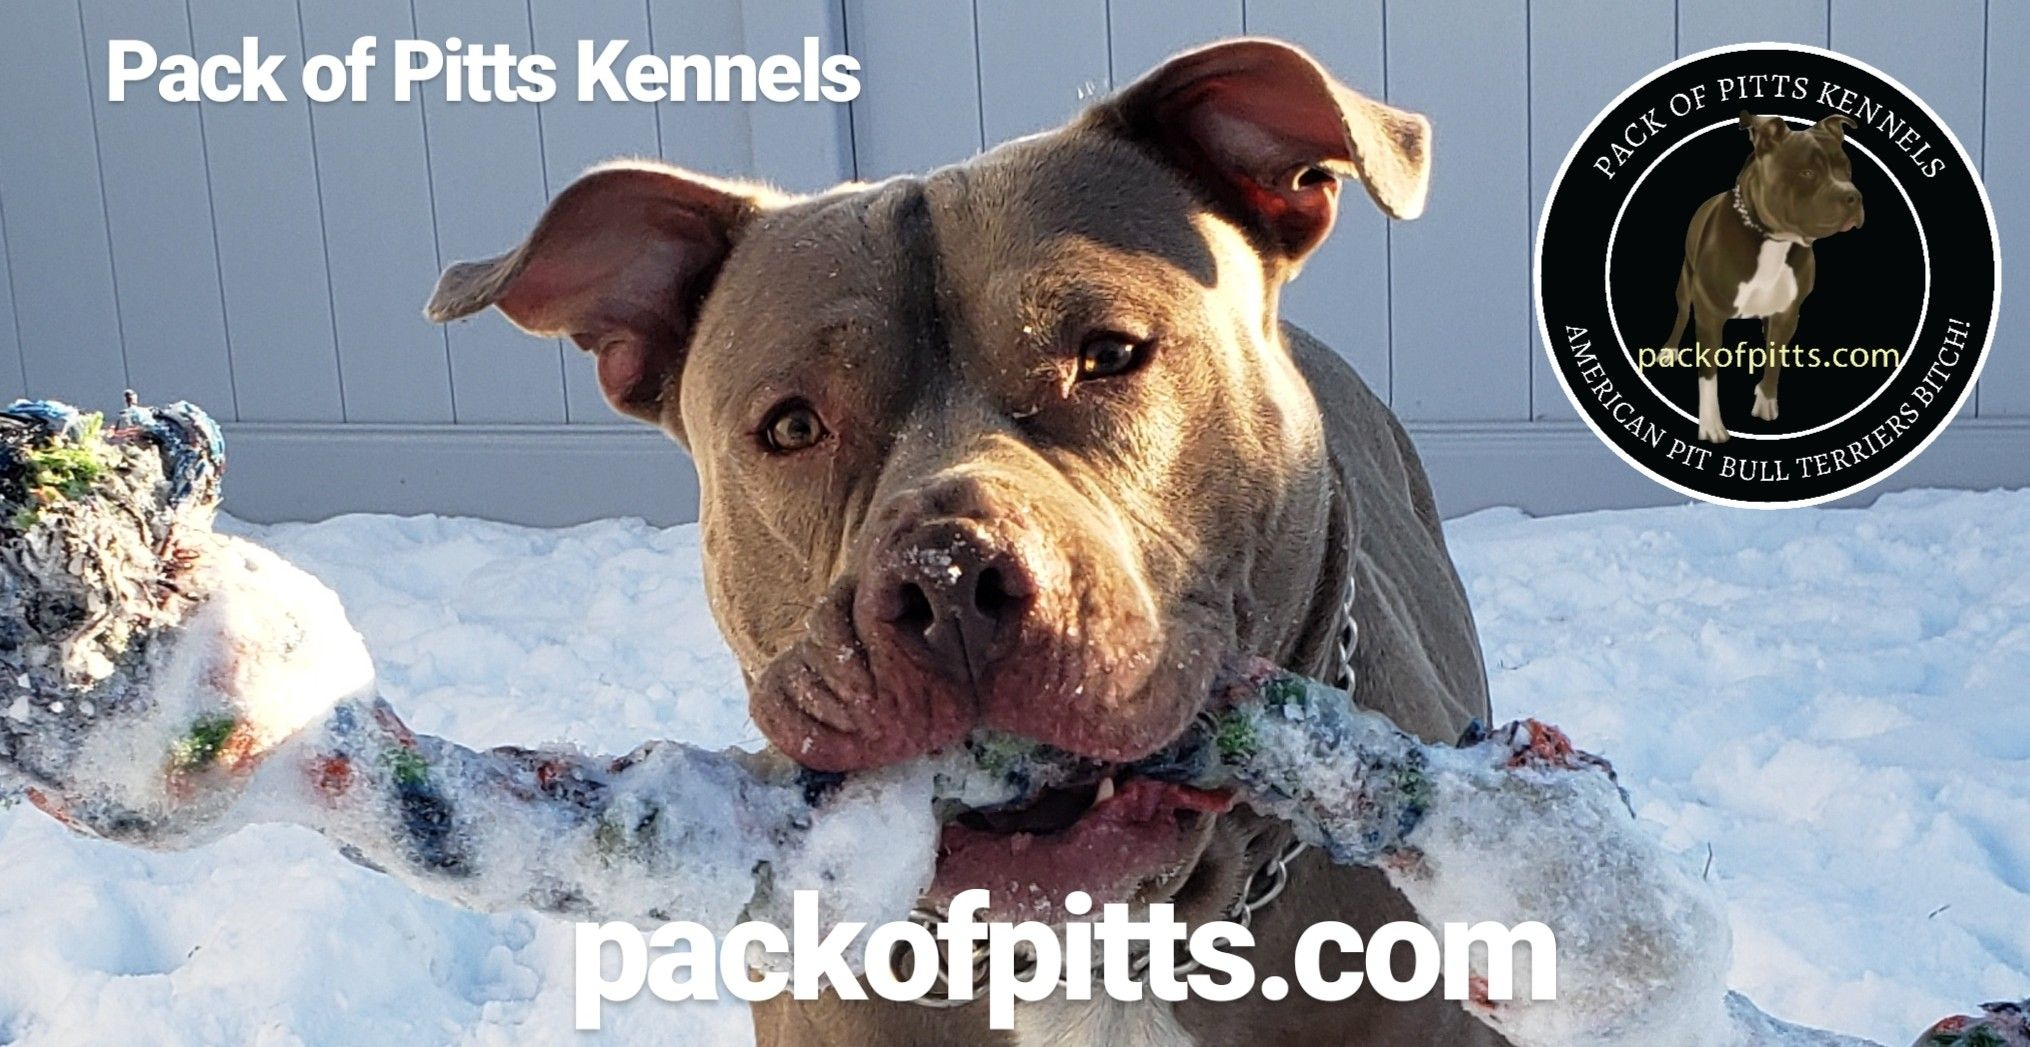 Pack of pitts kennels buffalo new york and niagara falls